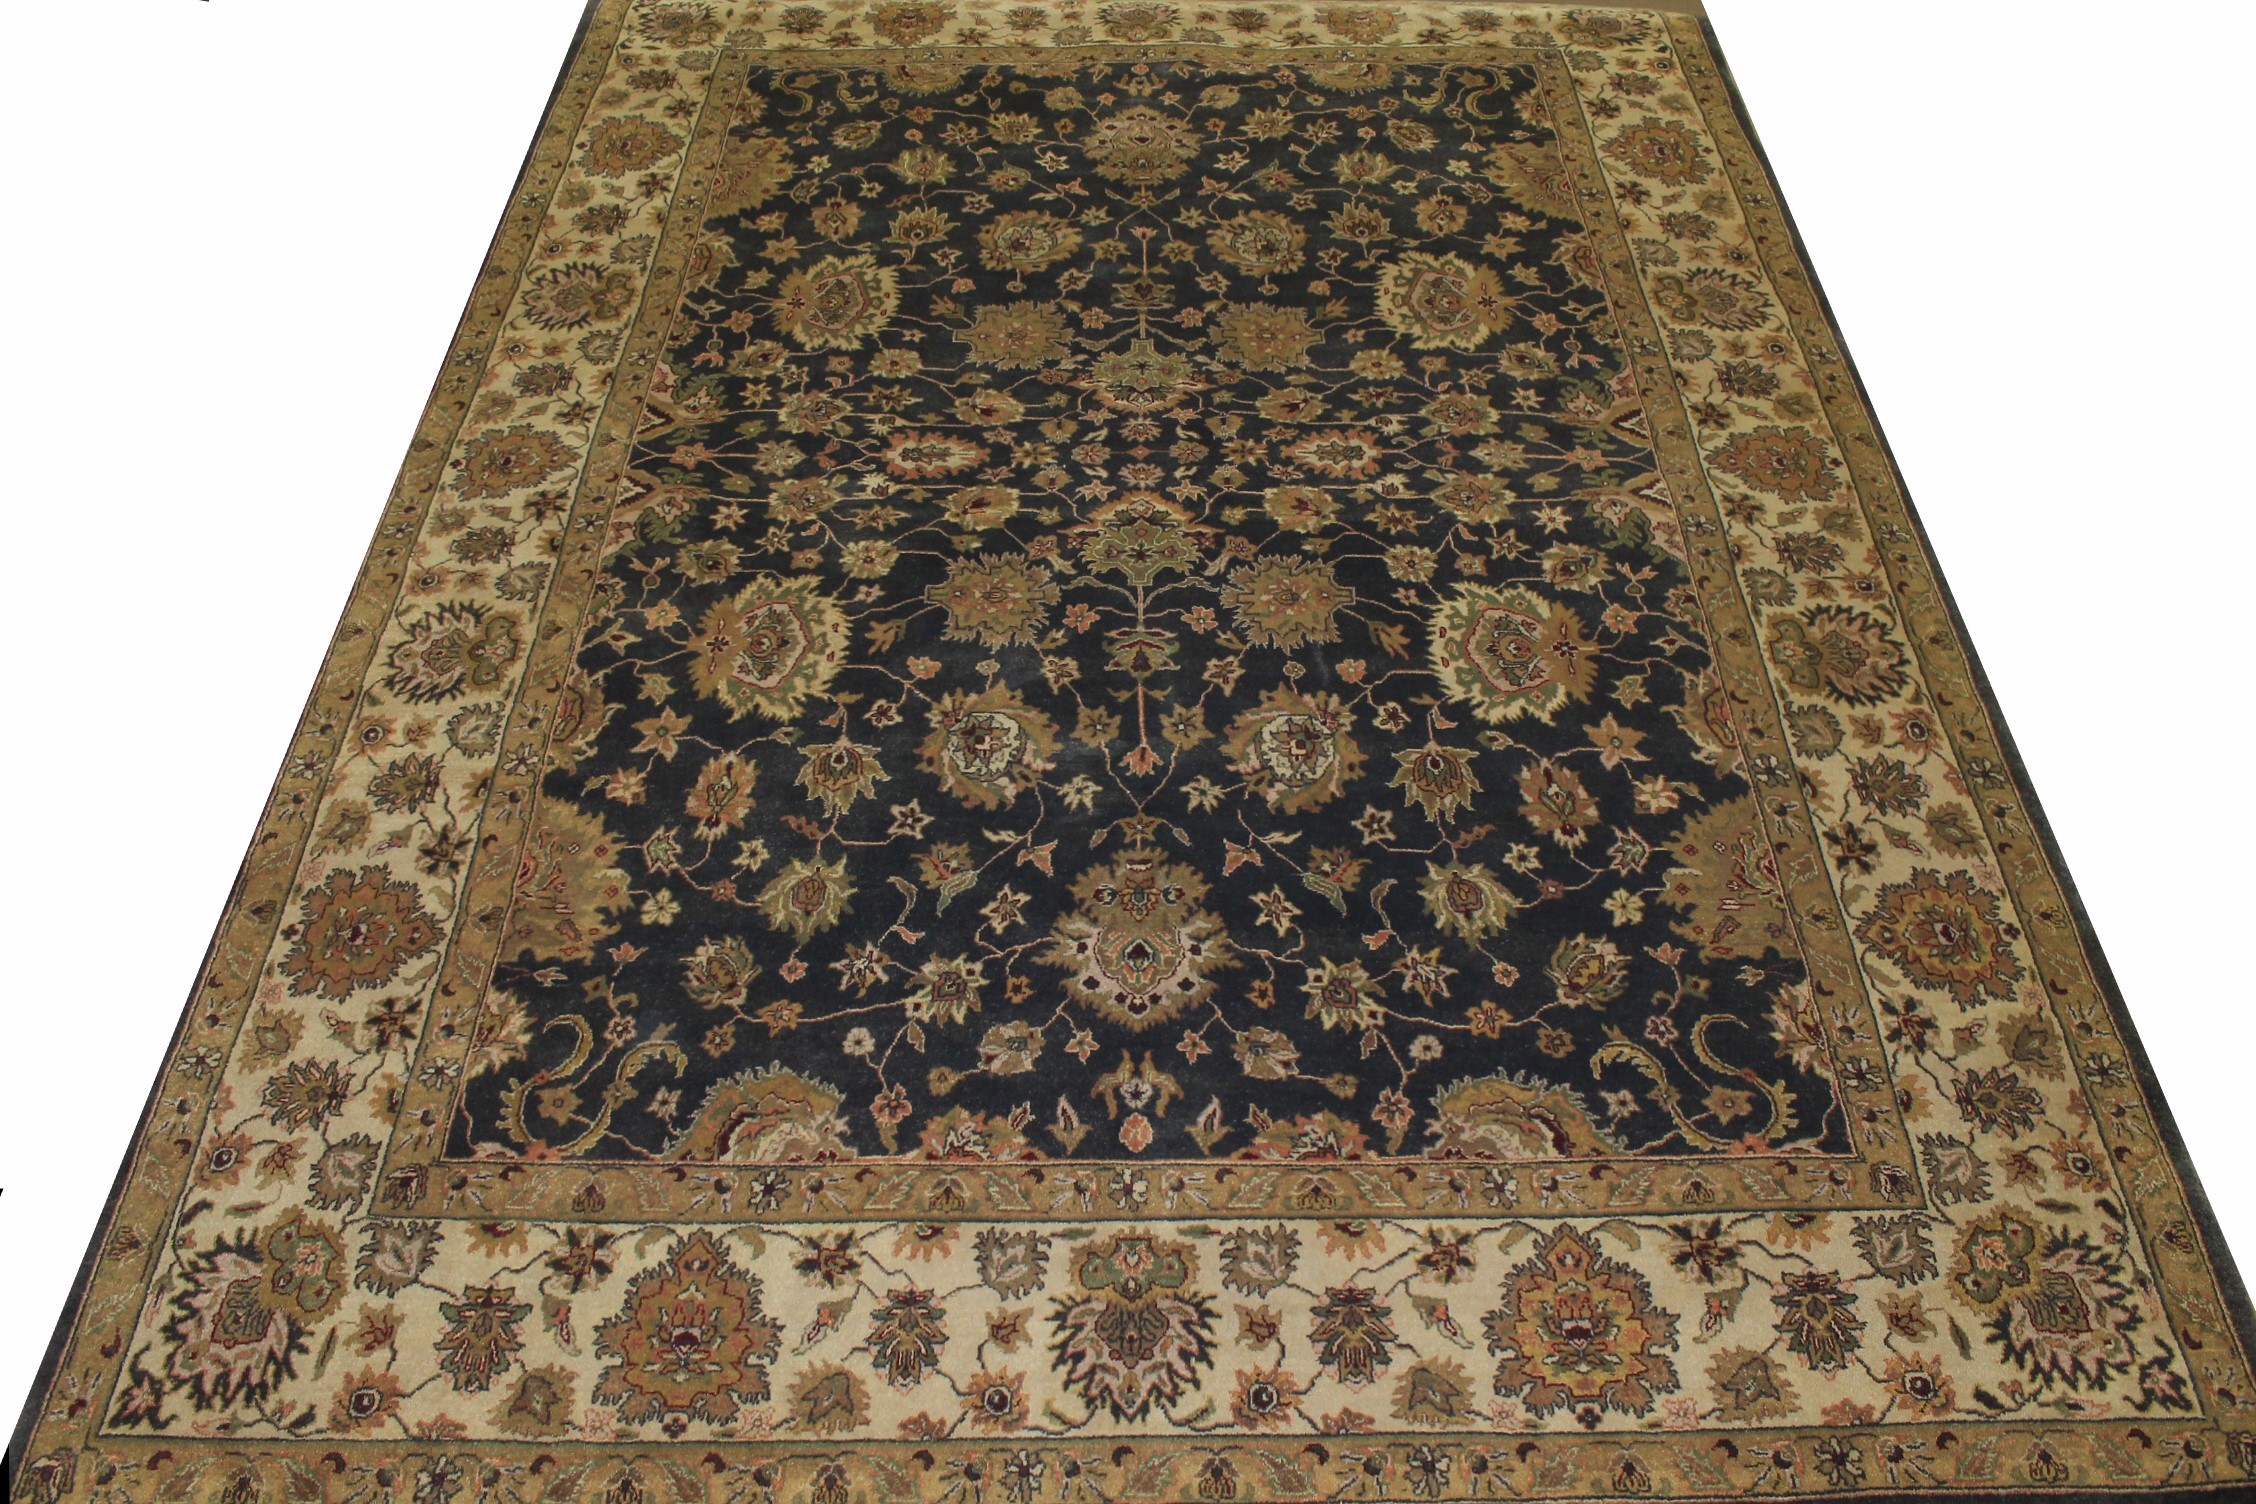 9x12 Traditional Hand Knotted Wool Area Rug - MR0178